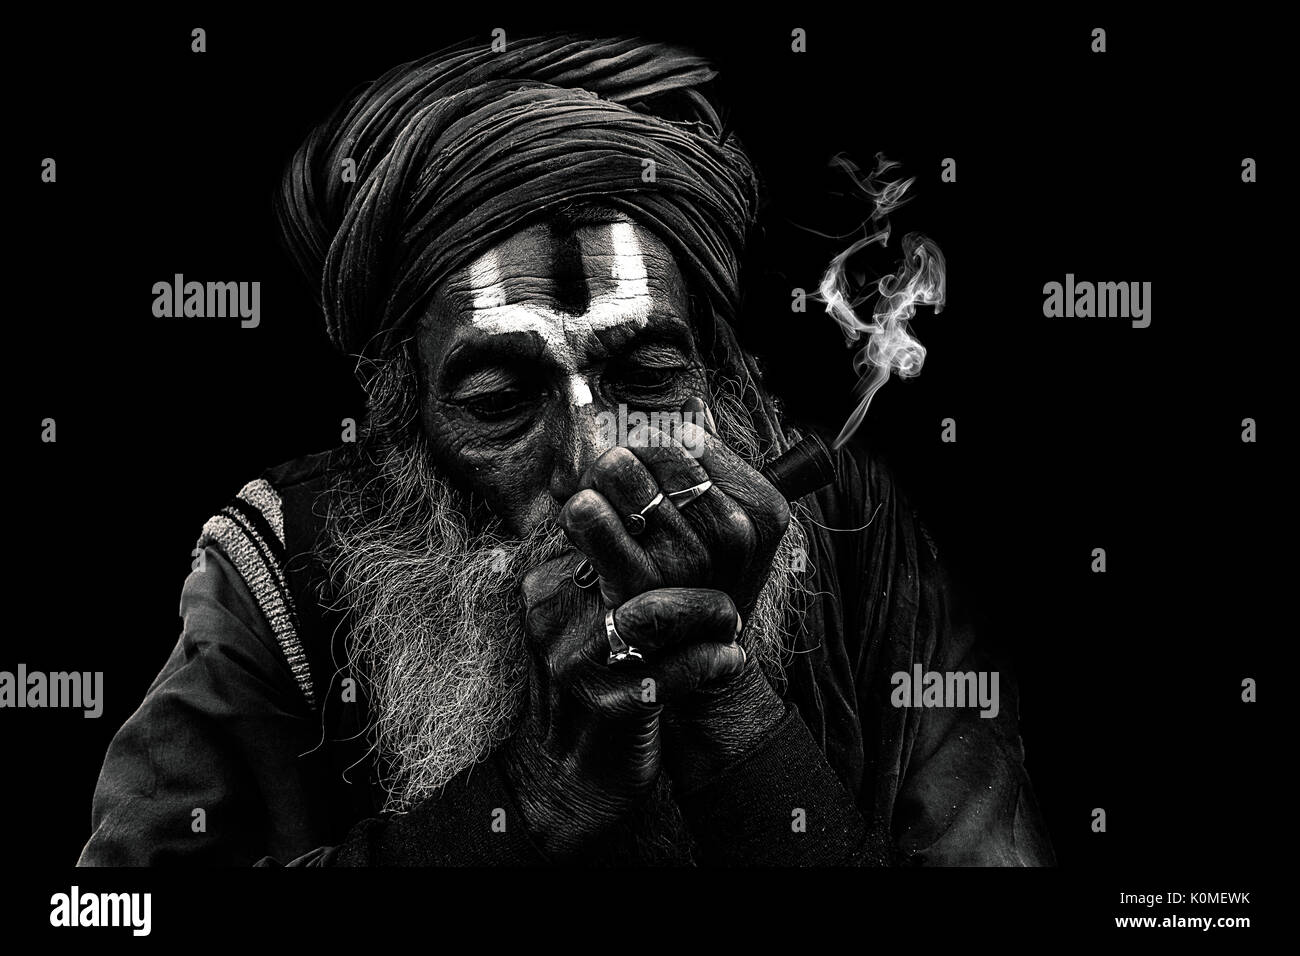 Sadhu Smoking Chillum India High Resolution Stock Photography And Images Alamy